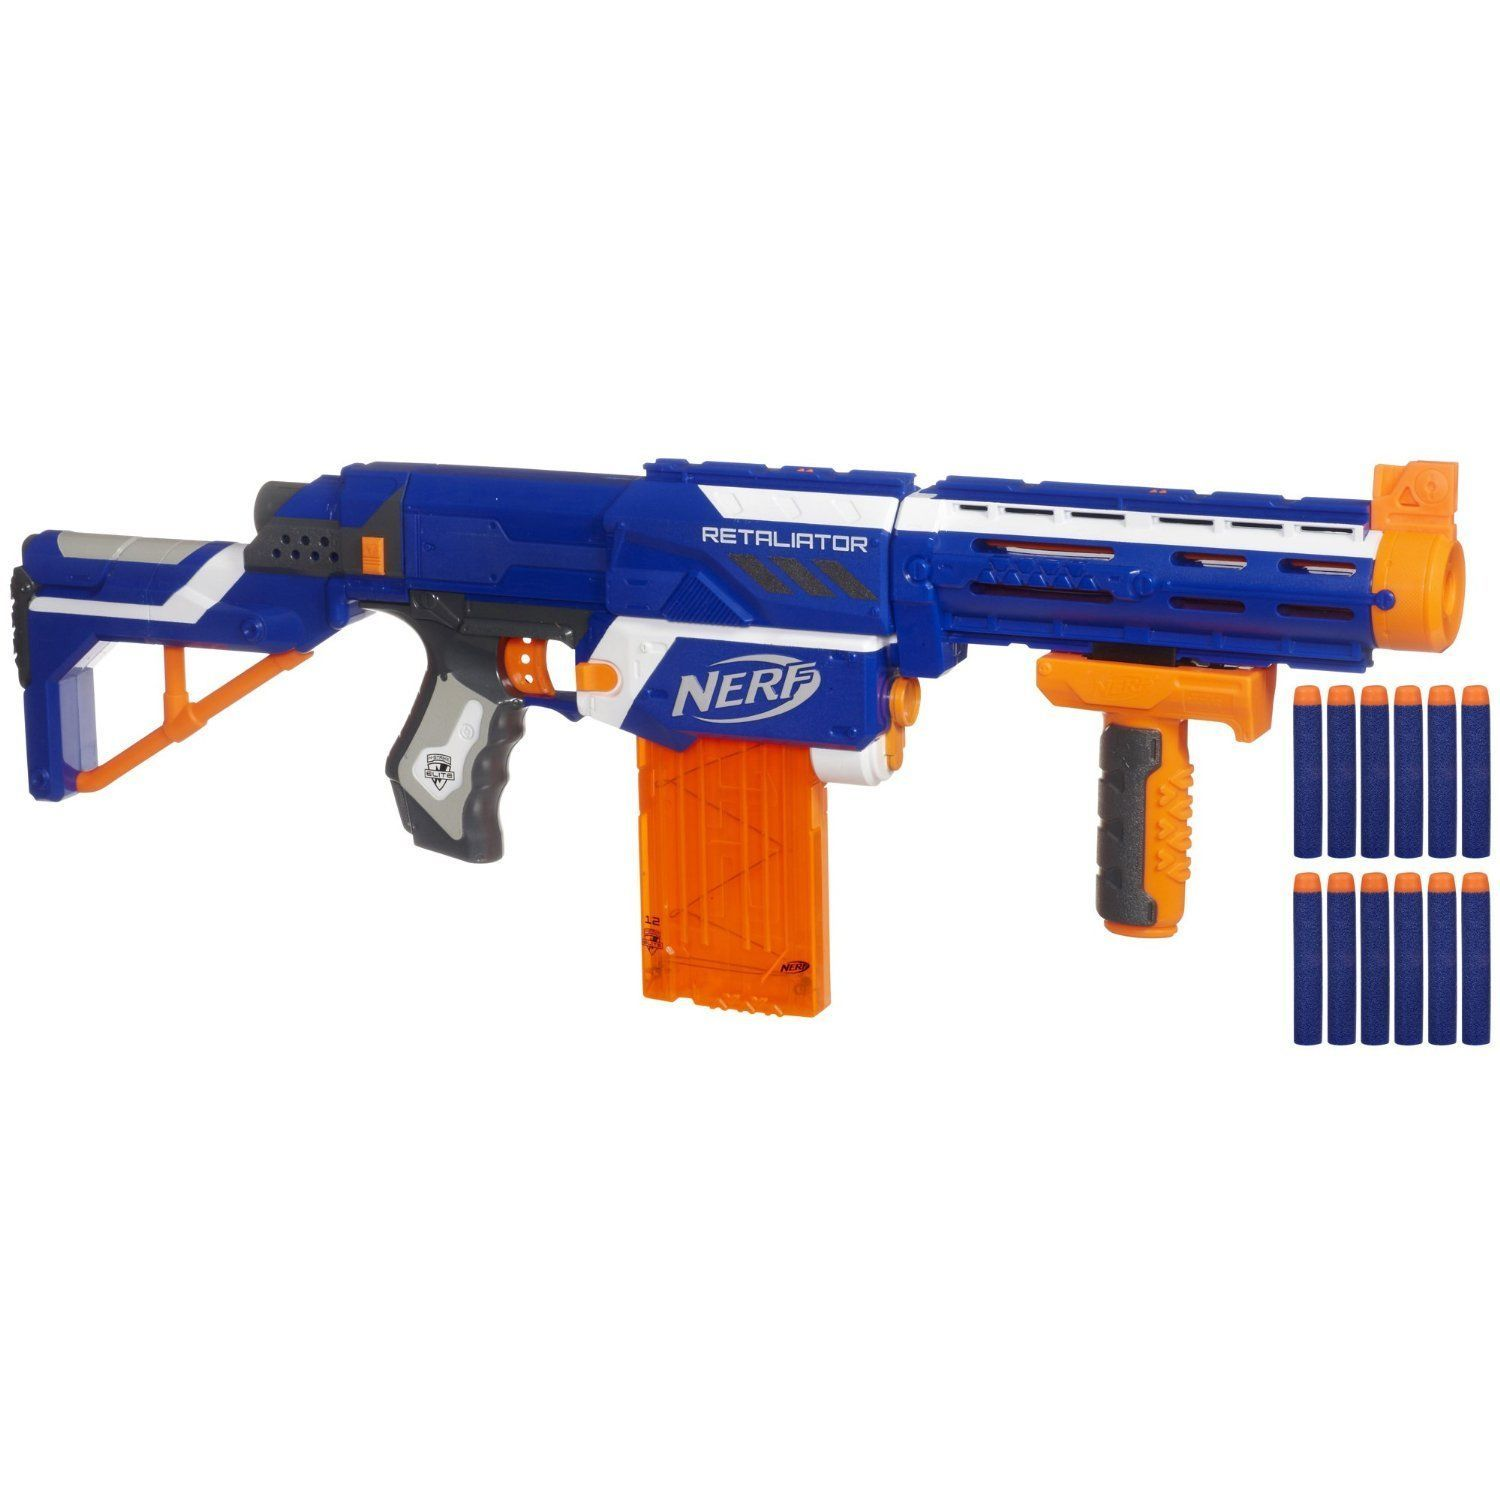 Nerf N Strike Elite Retaliator Mega Series Blaster Kids Rifle Game Gun Darts Toy